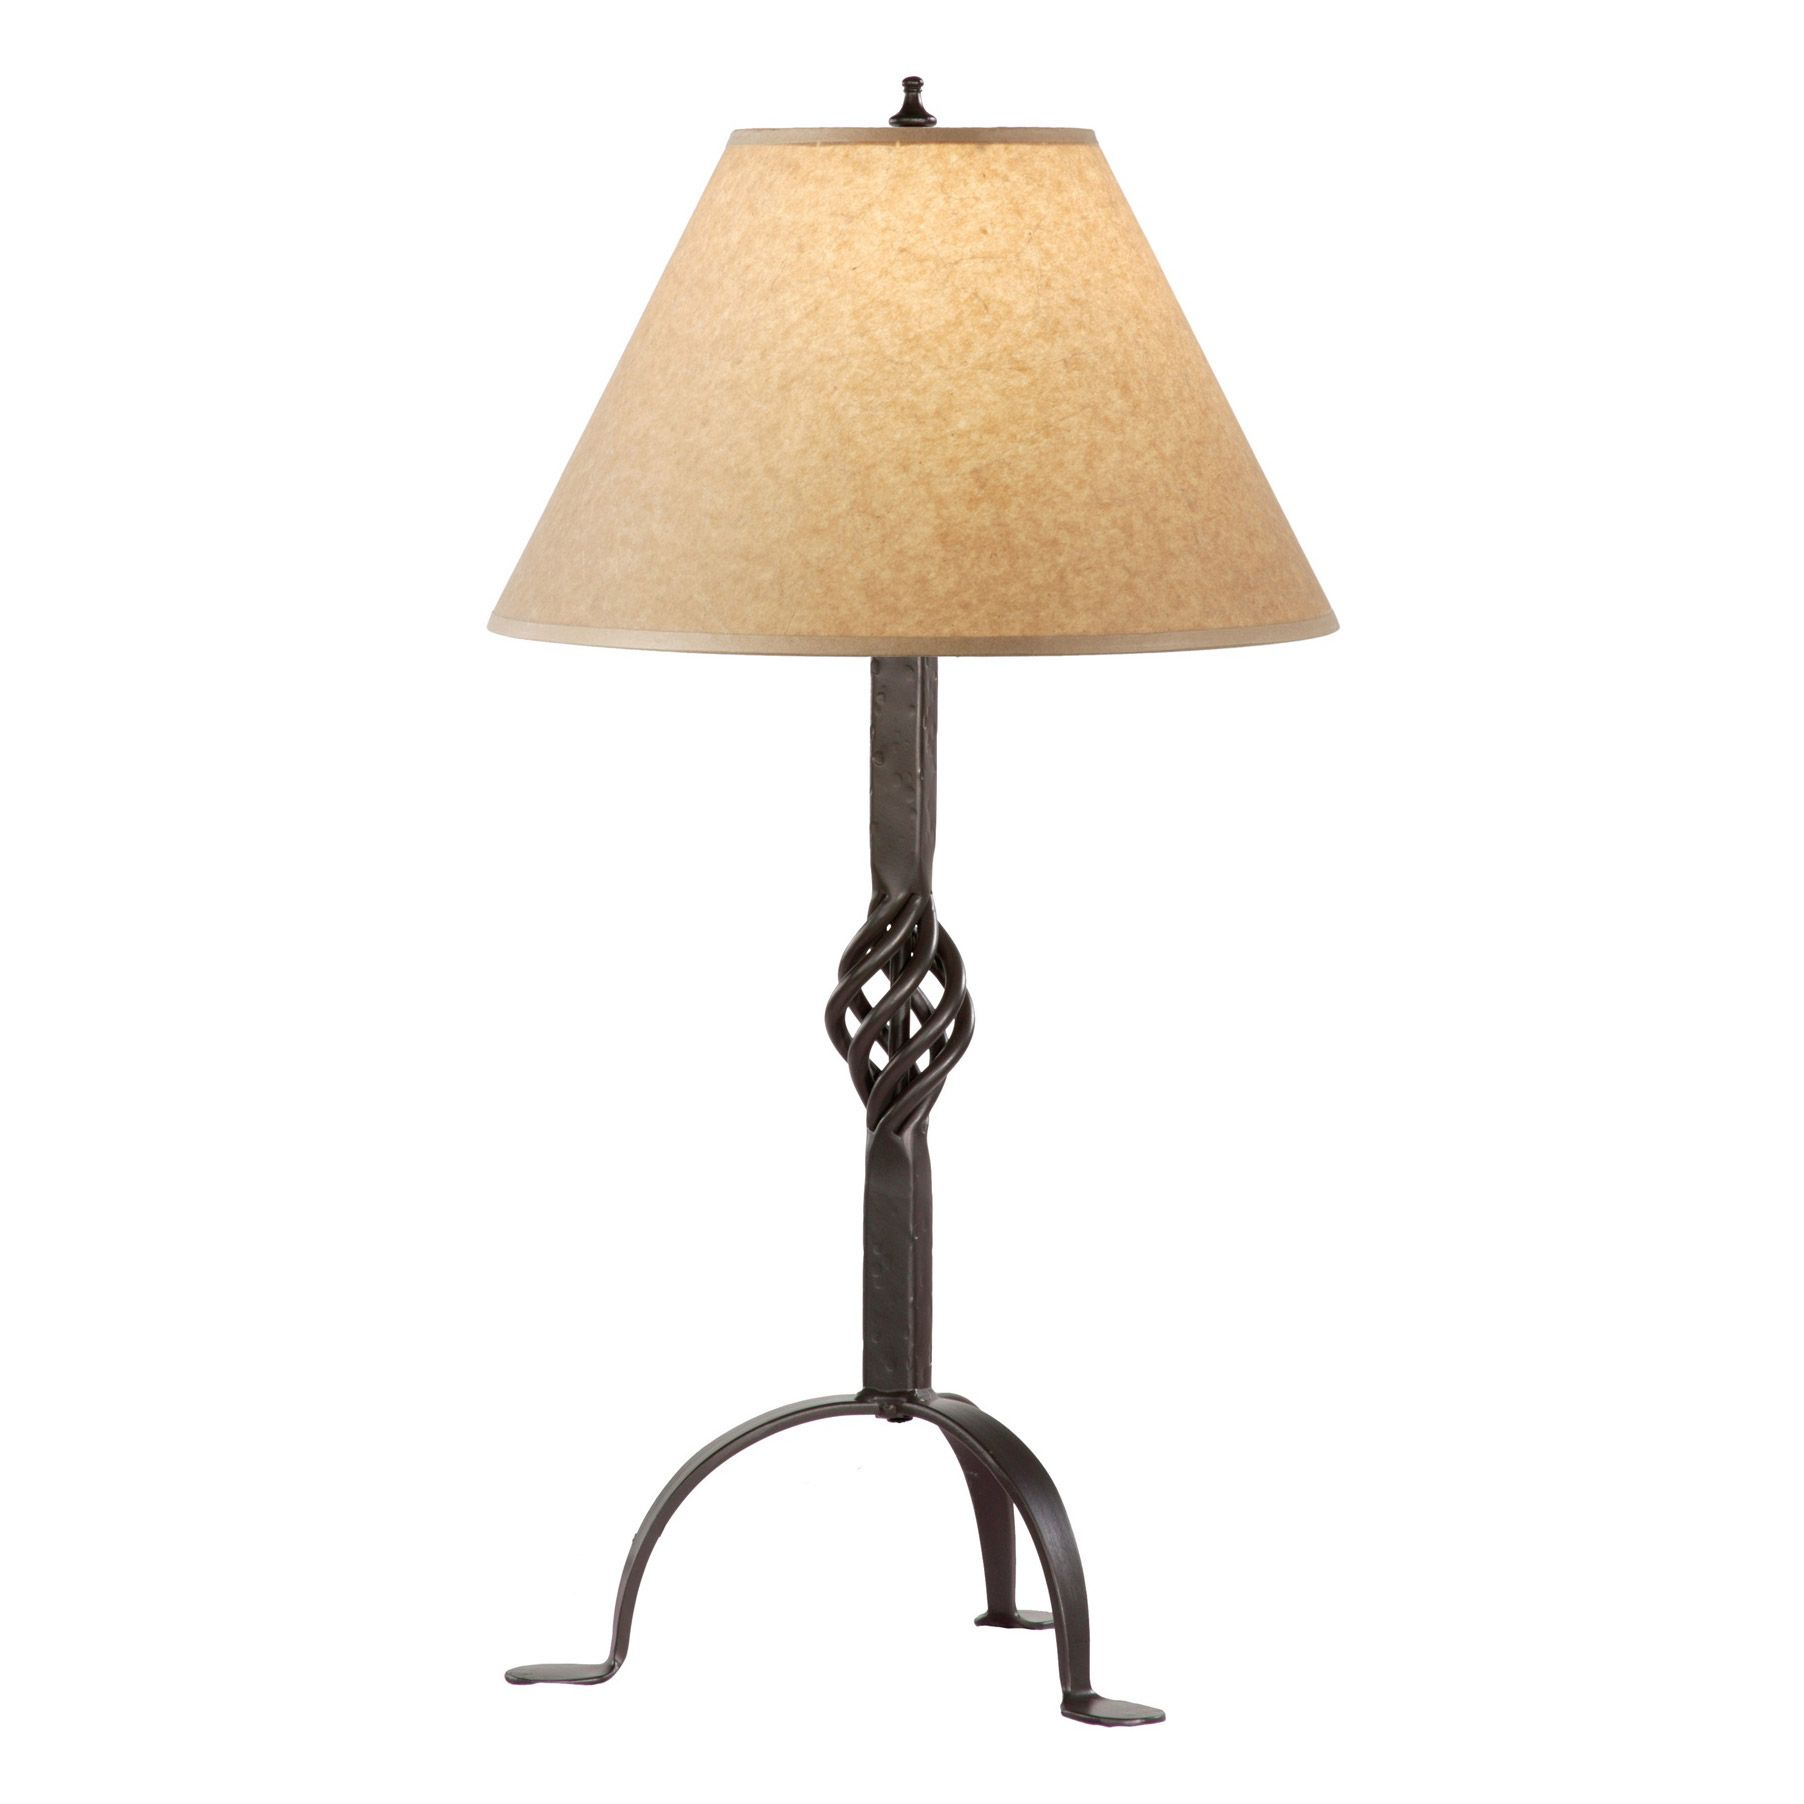 Tips on buying new wrought iron table lamps